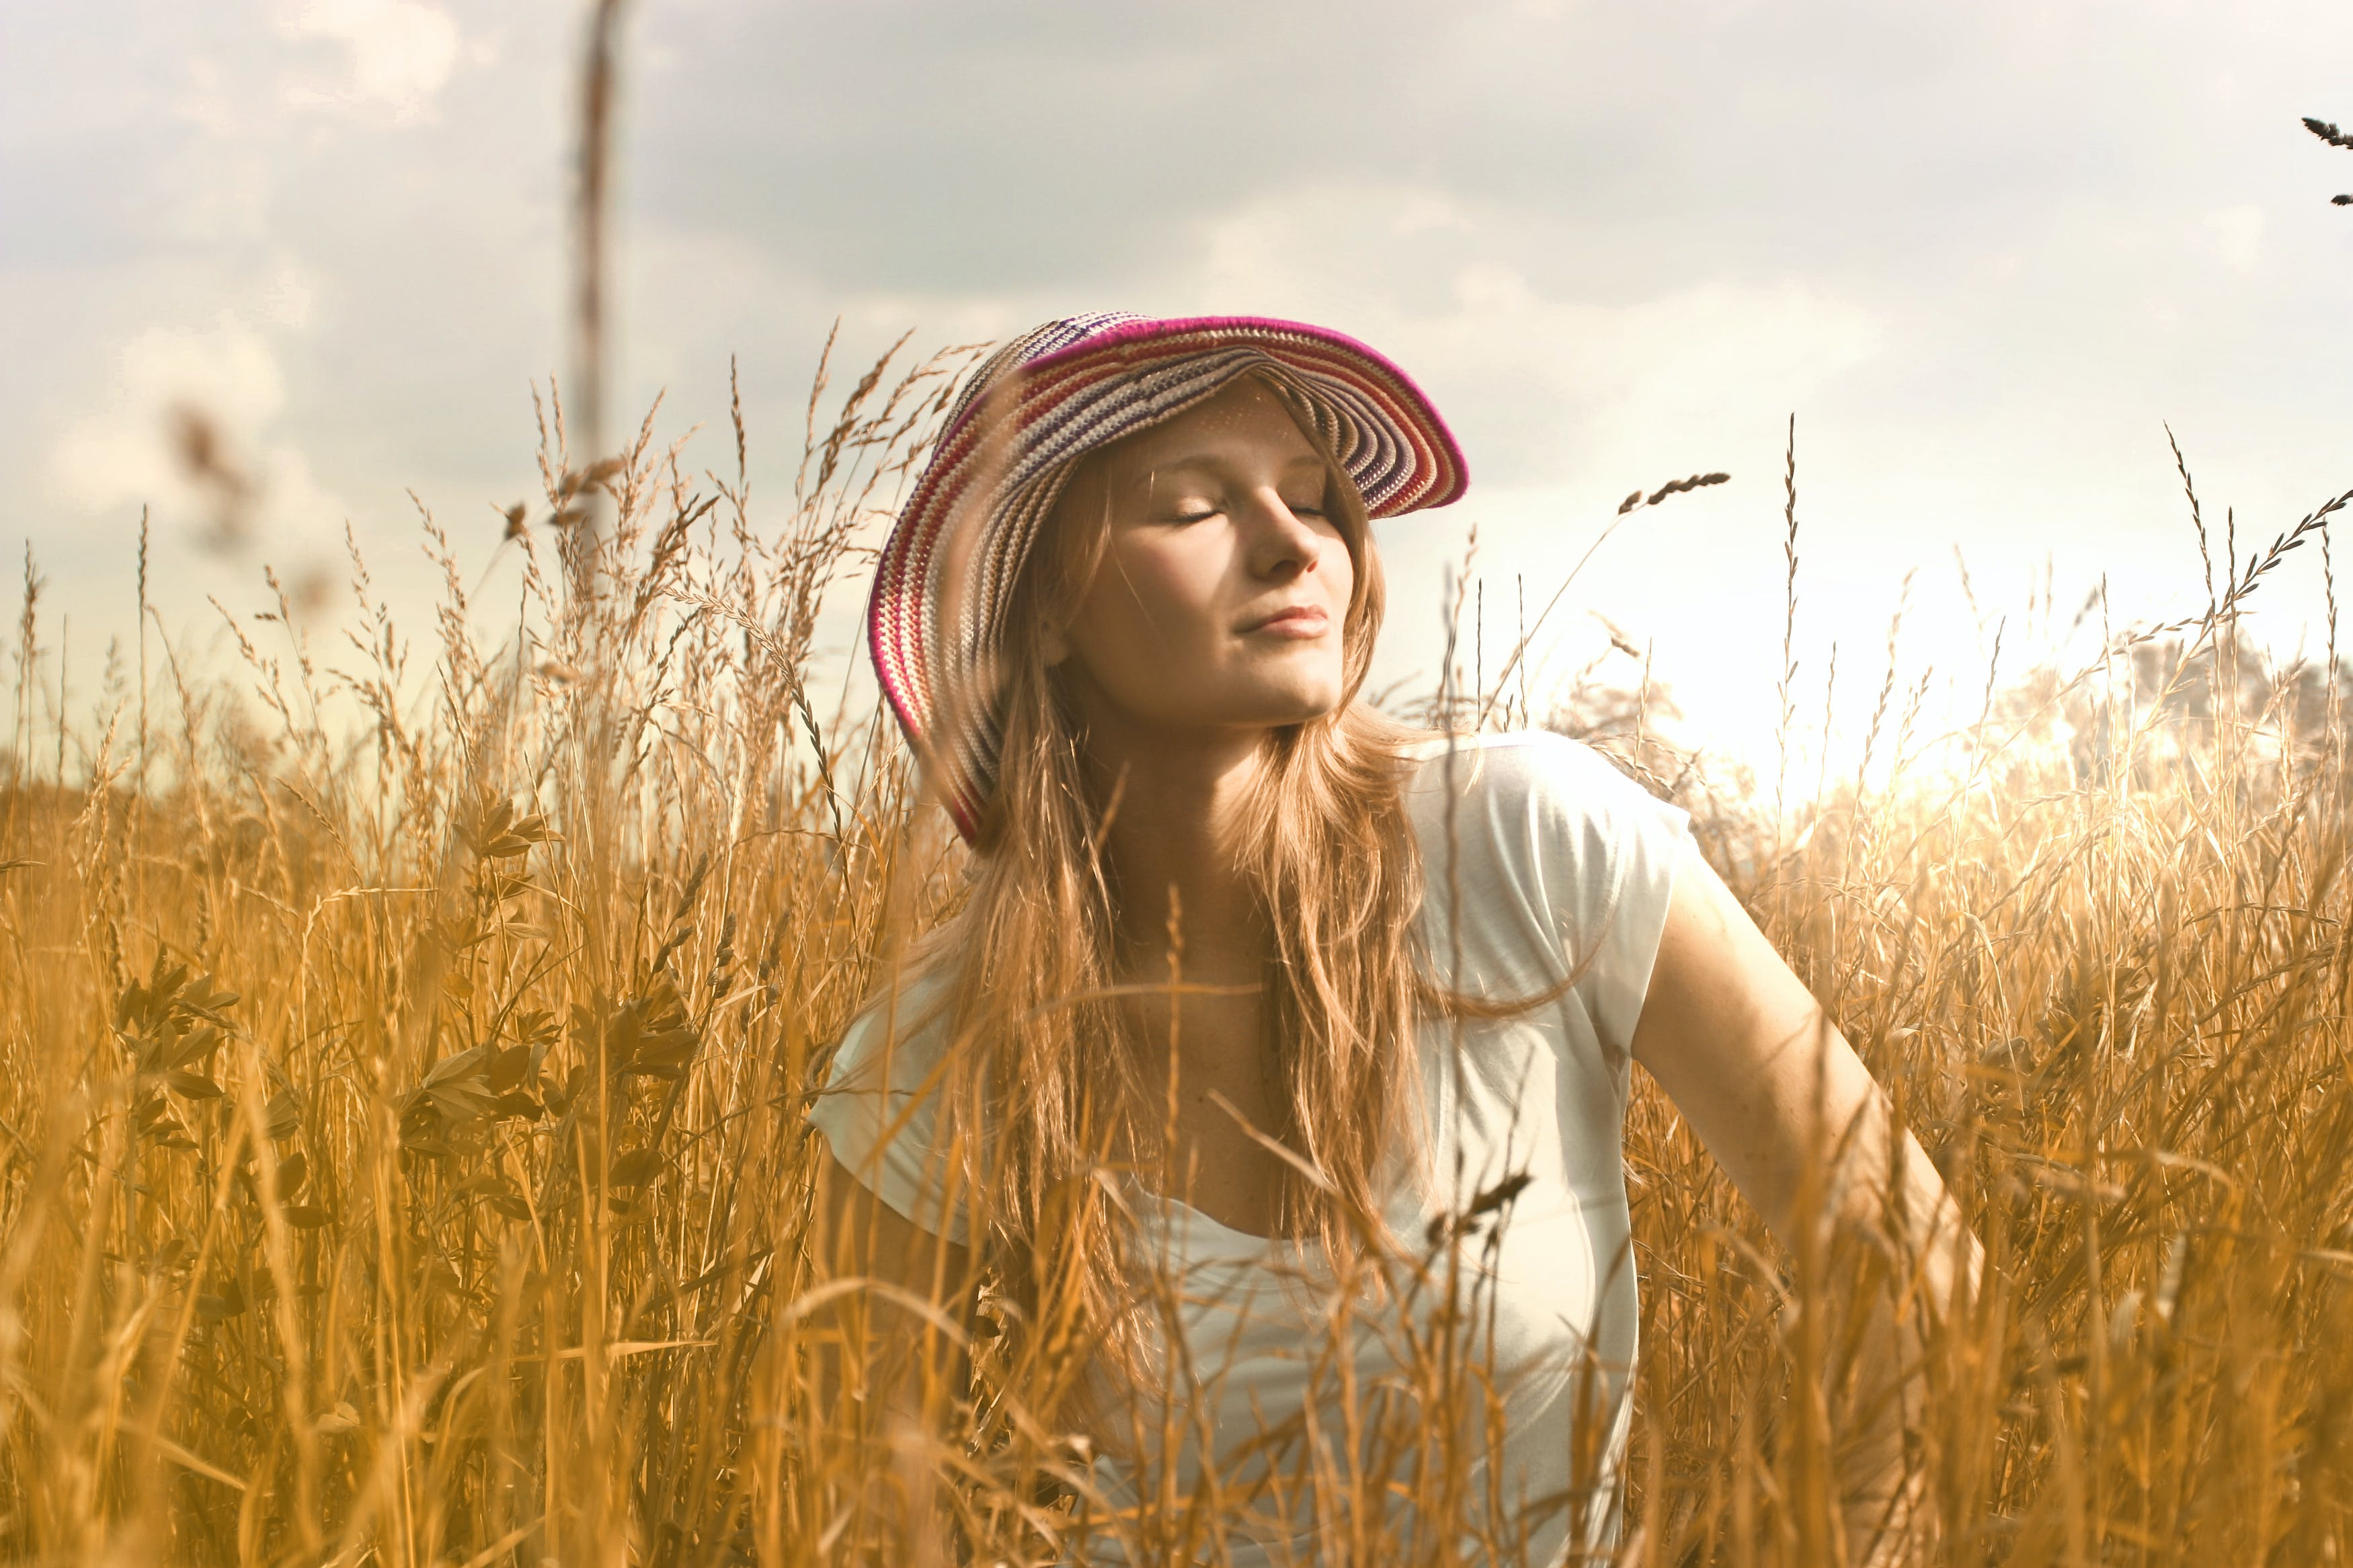 Woman Wearing White Top and Red and White Sunny Hat